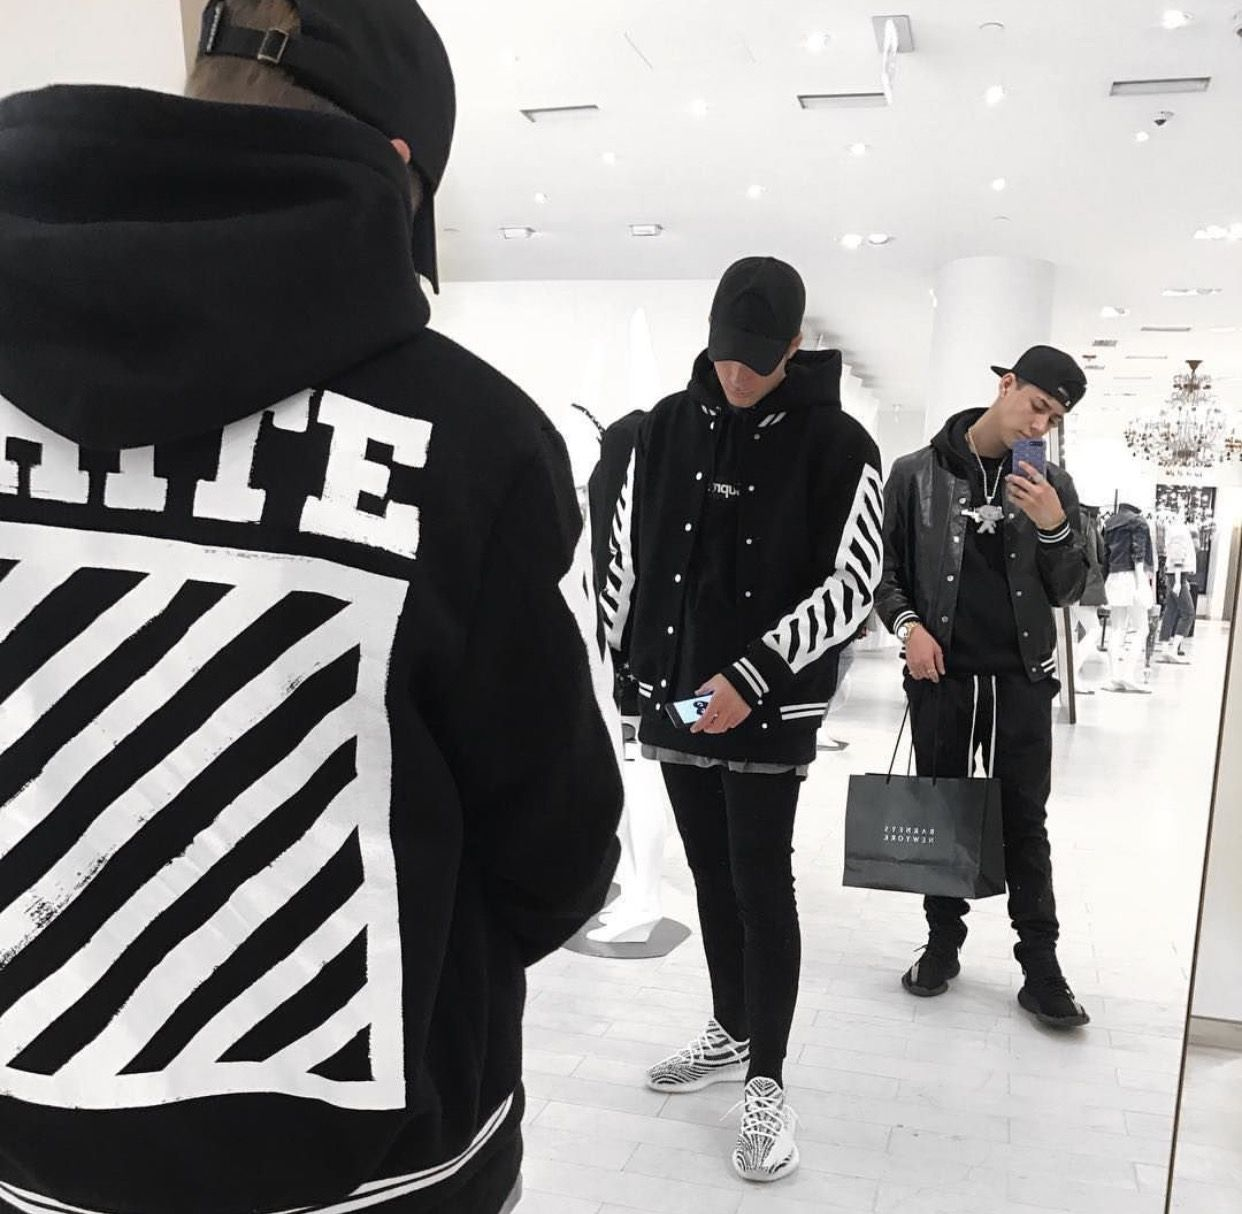 0084a4383 Off-White hoodies with Adidas Yeezy Boost 350 V2